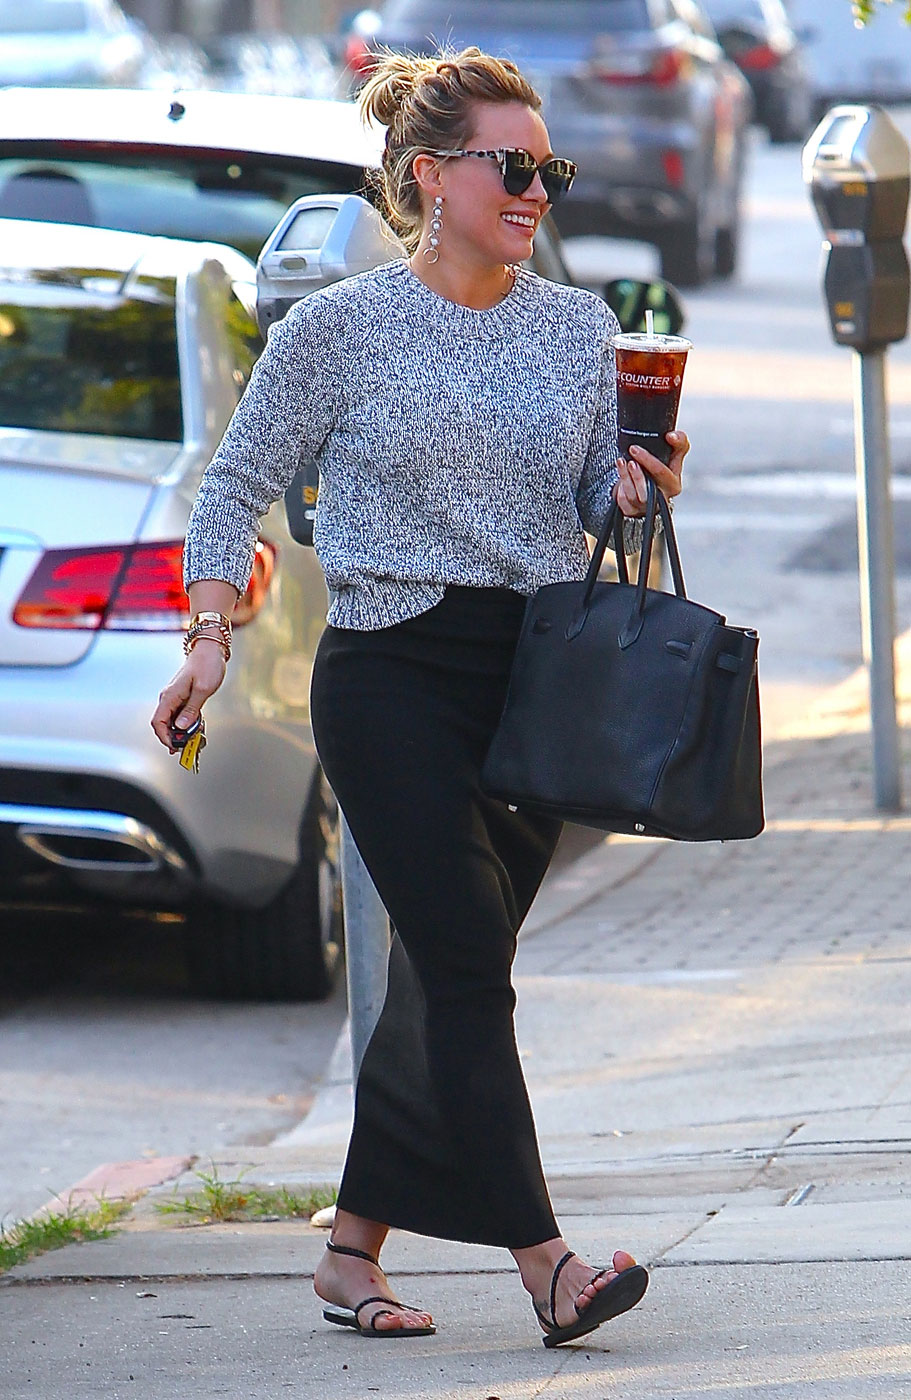 Hilary Duff has the best mom-on-the-go style in her black maxi skirt and Ancient Greek sandals.